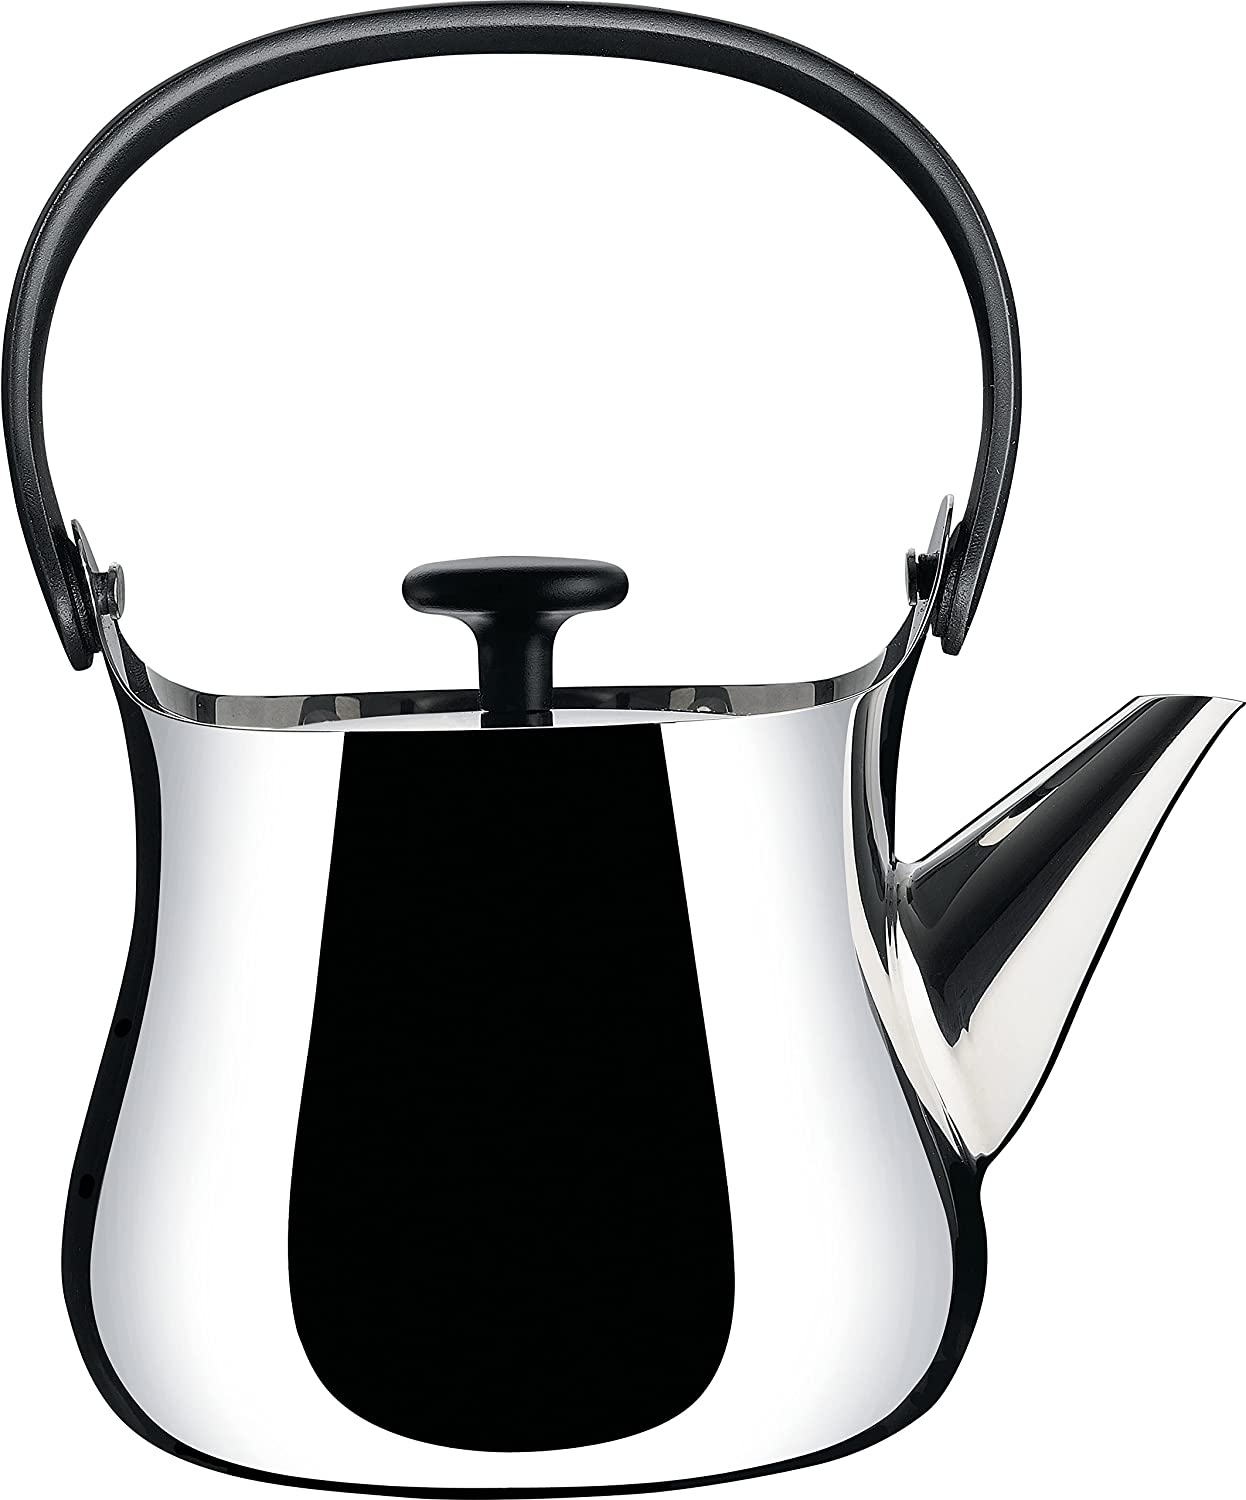 alessi cha kettleteapot in  stainless steel mirror  - alessi cha kettleteapot in  stainless steel mirror polished handleand knob in thermoplastic resin magnetic steel bottom suitable forinduction